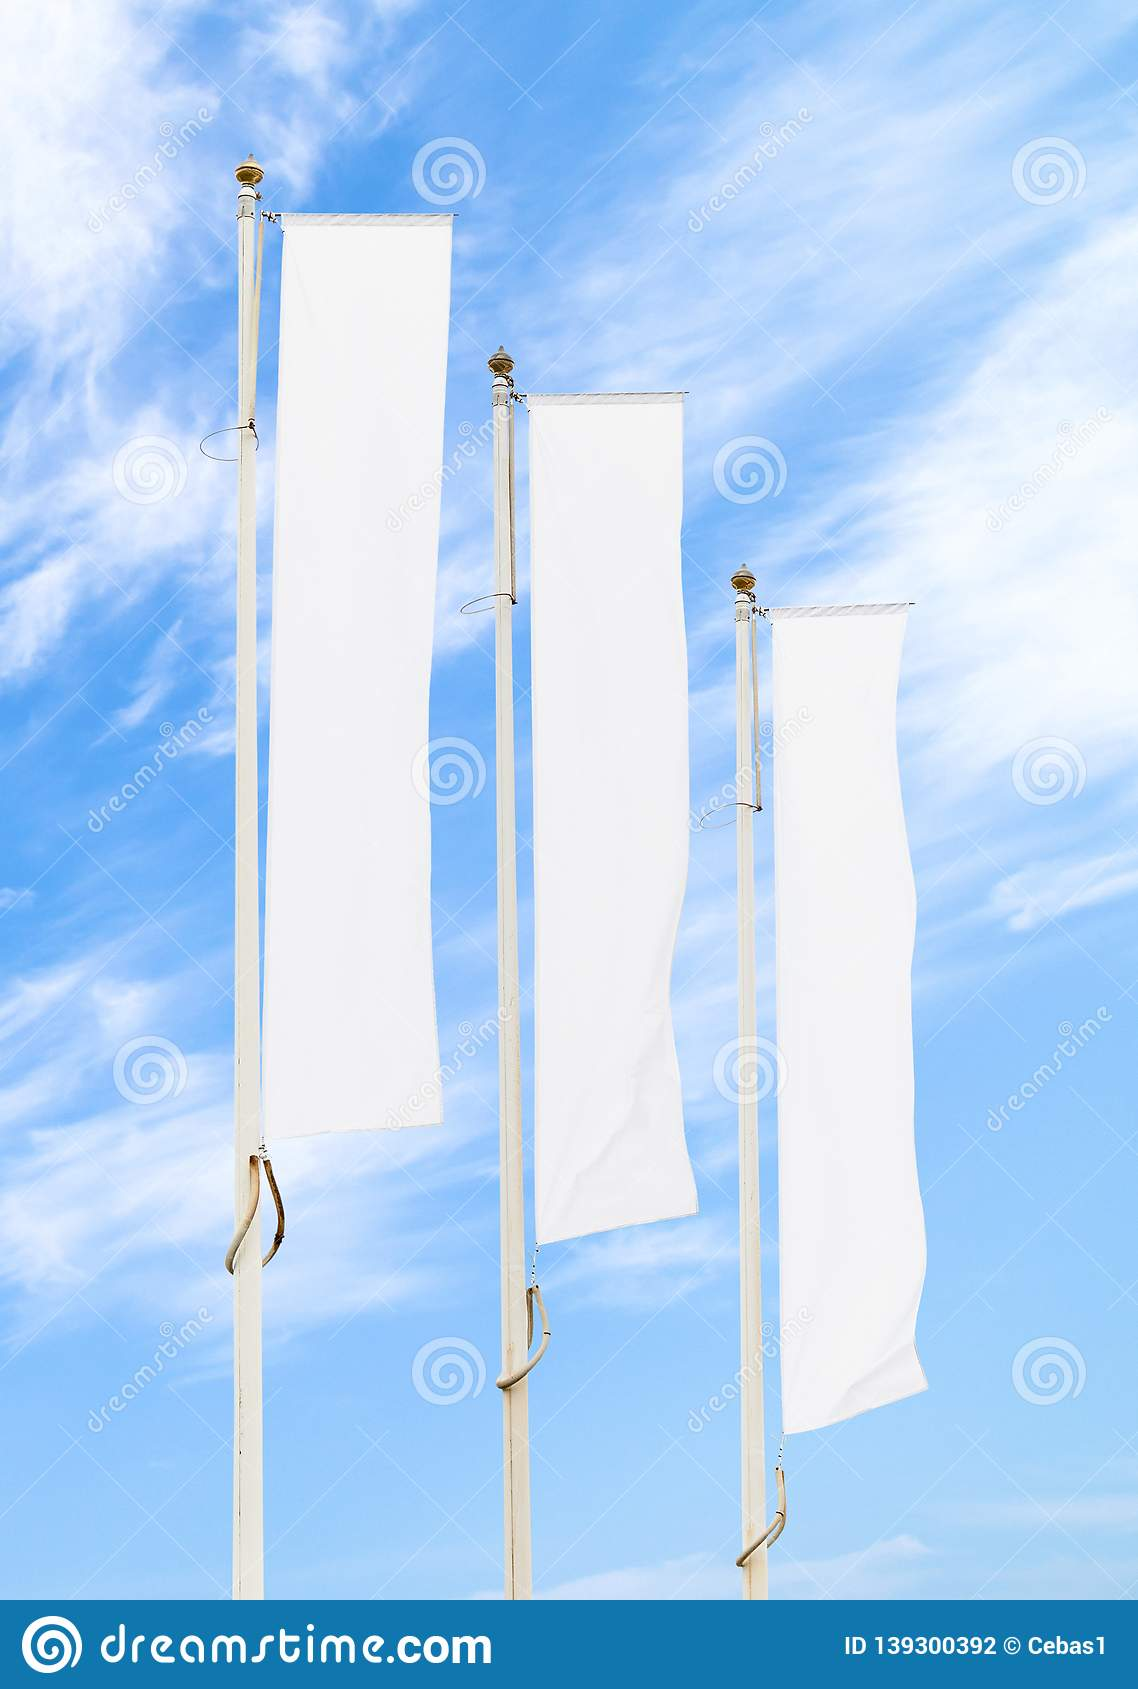 Three white corporate flags mockup against blue sky